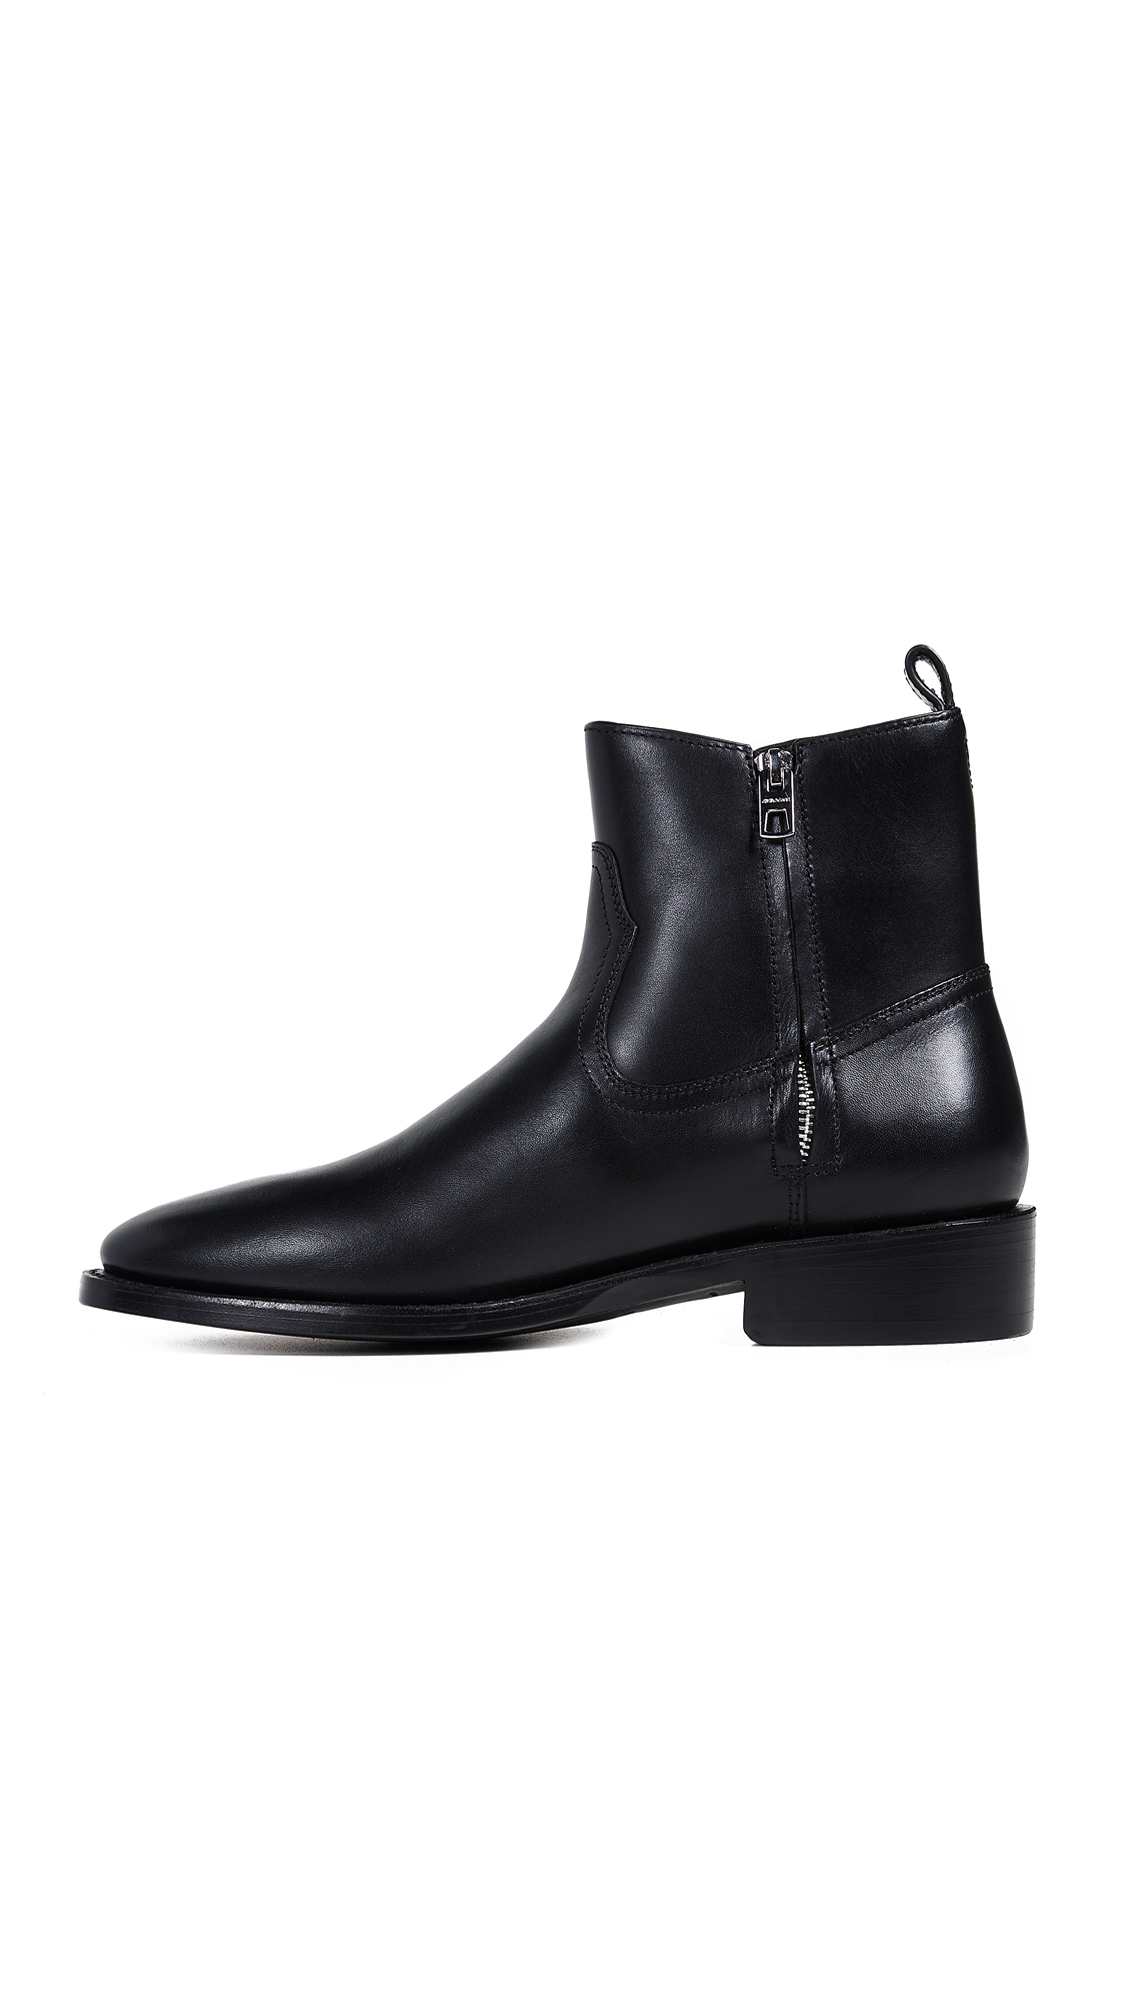 8622cd59cea Coach New York Leather Western Boots   EAST DANE